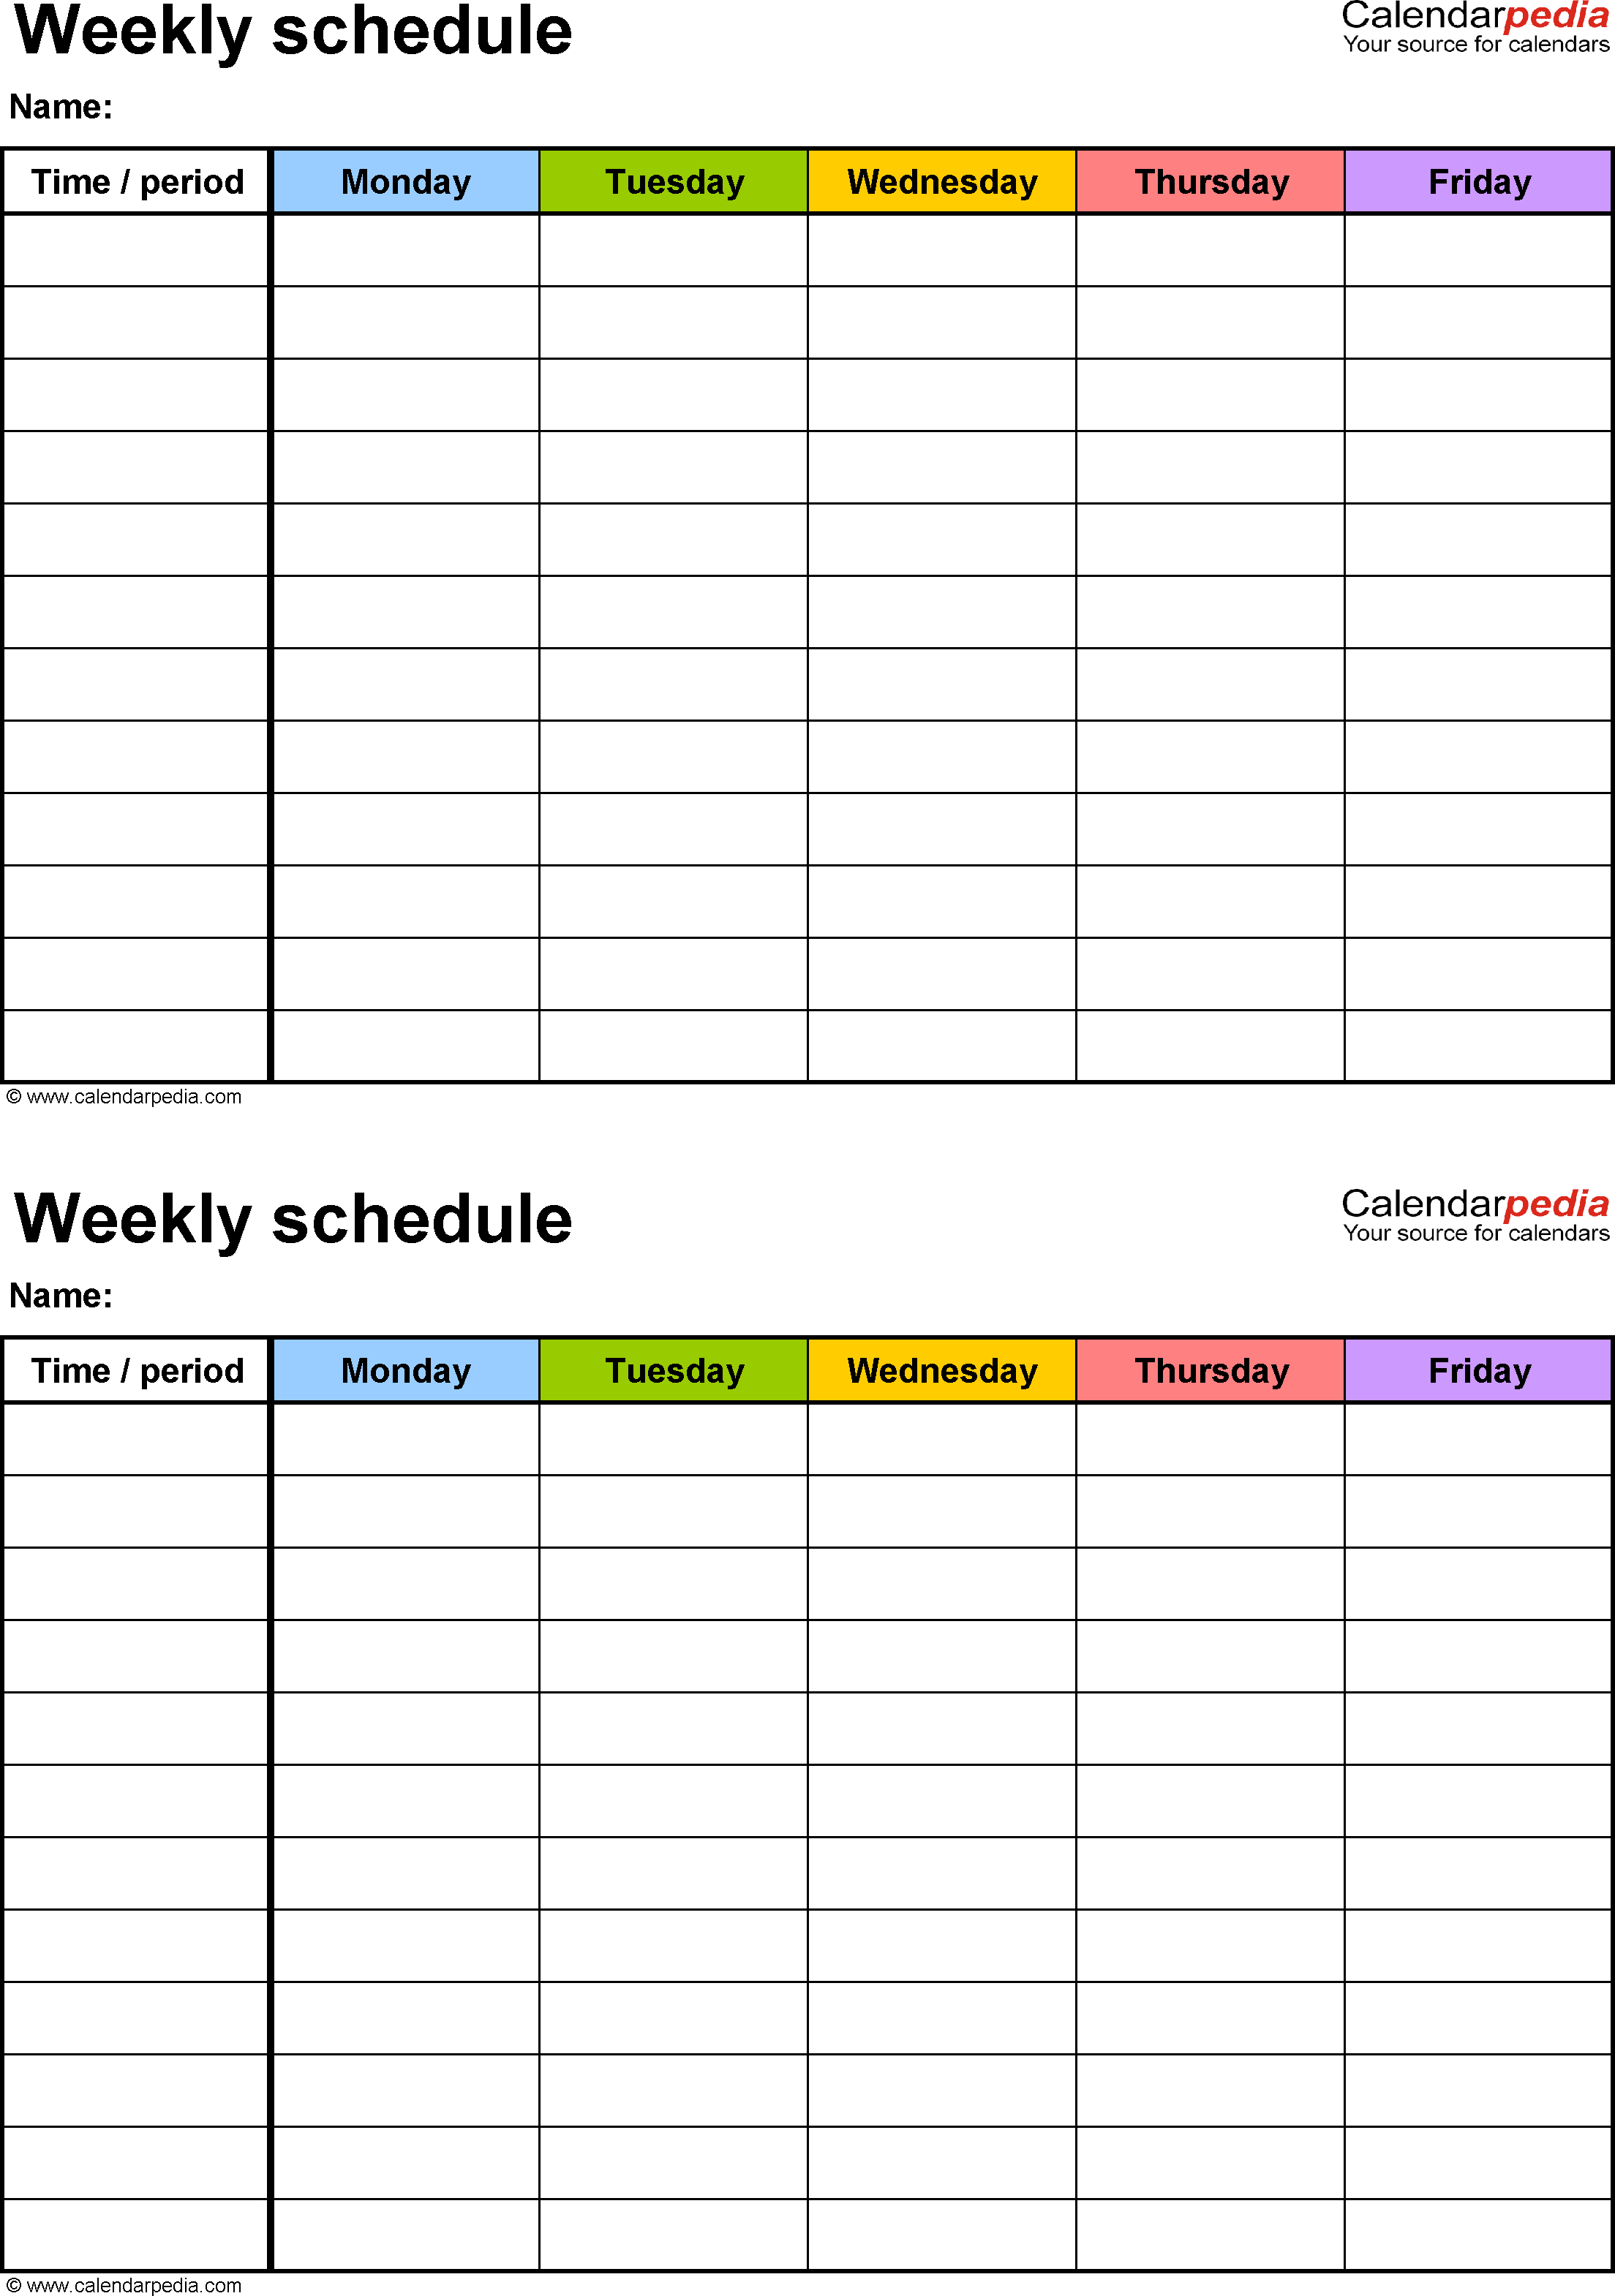 Free Weekly Schedule Templates For Excel - 18 Templates in Blank 12 Hour Shift Schedule Templates